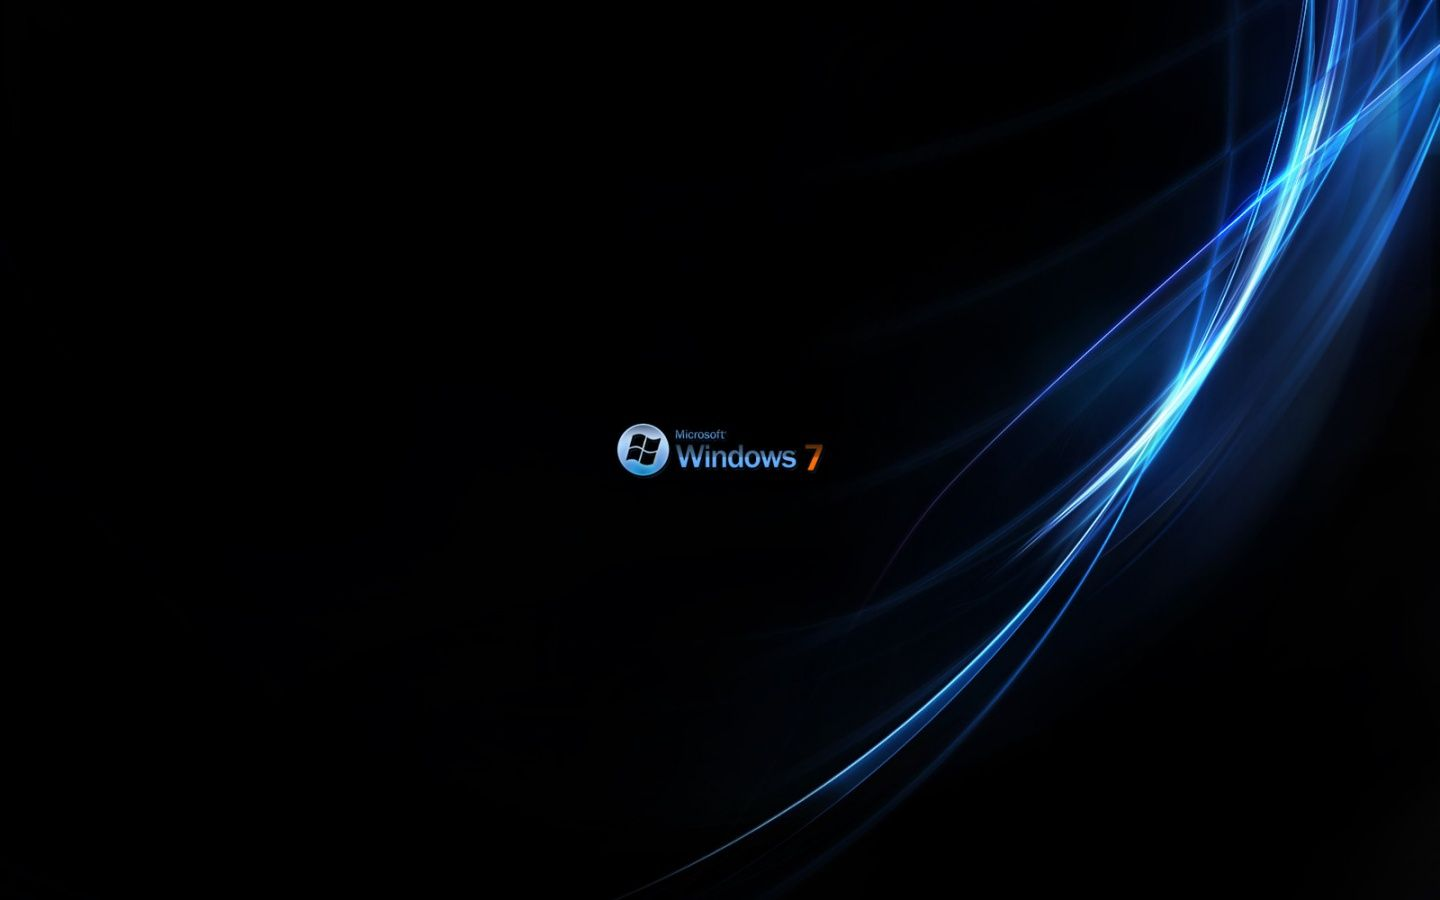 Windows 7 Wallpaper High Quality Resolution In 2021 Microsoft Wallpaper Windows Wallpaper Computer Wallpaper Hd